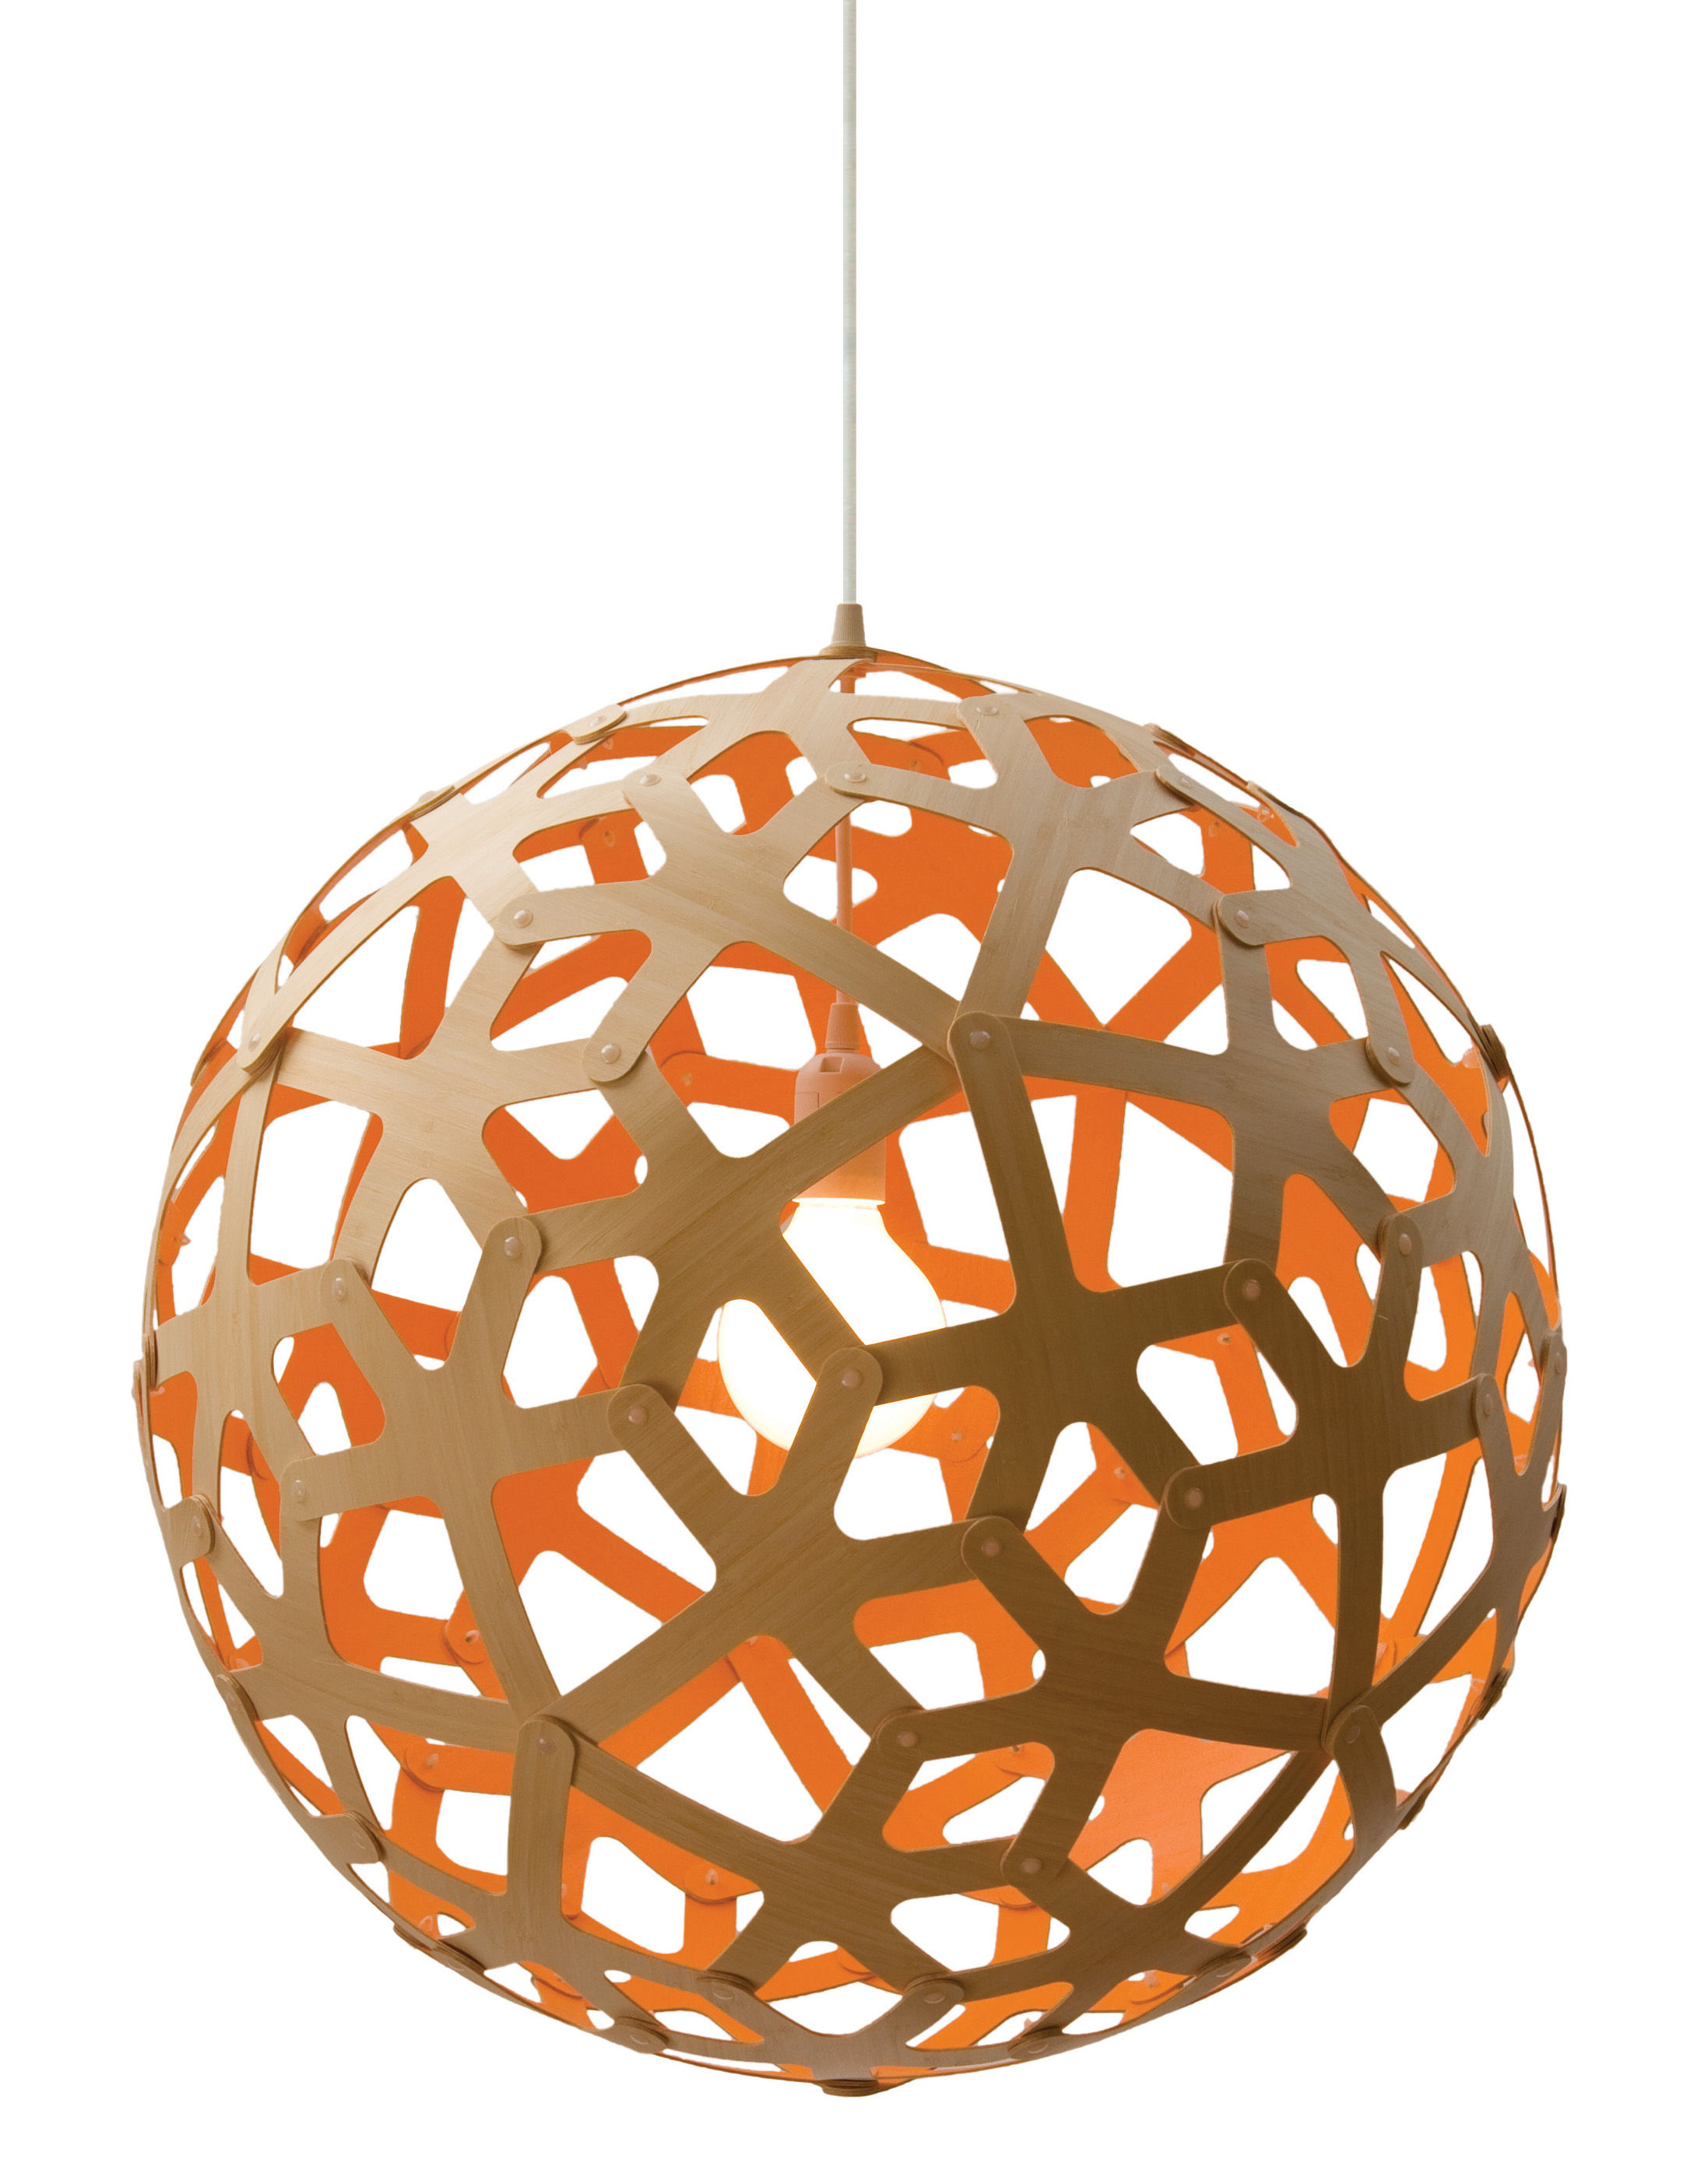 Luminaire - Suspensions - Suspension Coral / Ø 40 cm - Bicolore orange & bois - David Trubridge - Orange / bois naturel - Pin